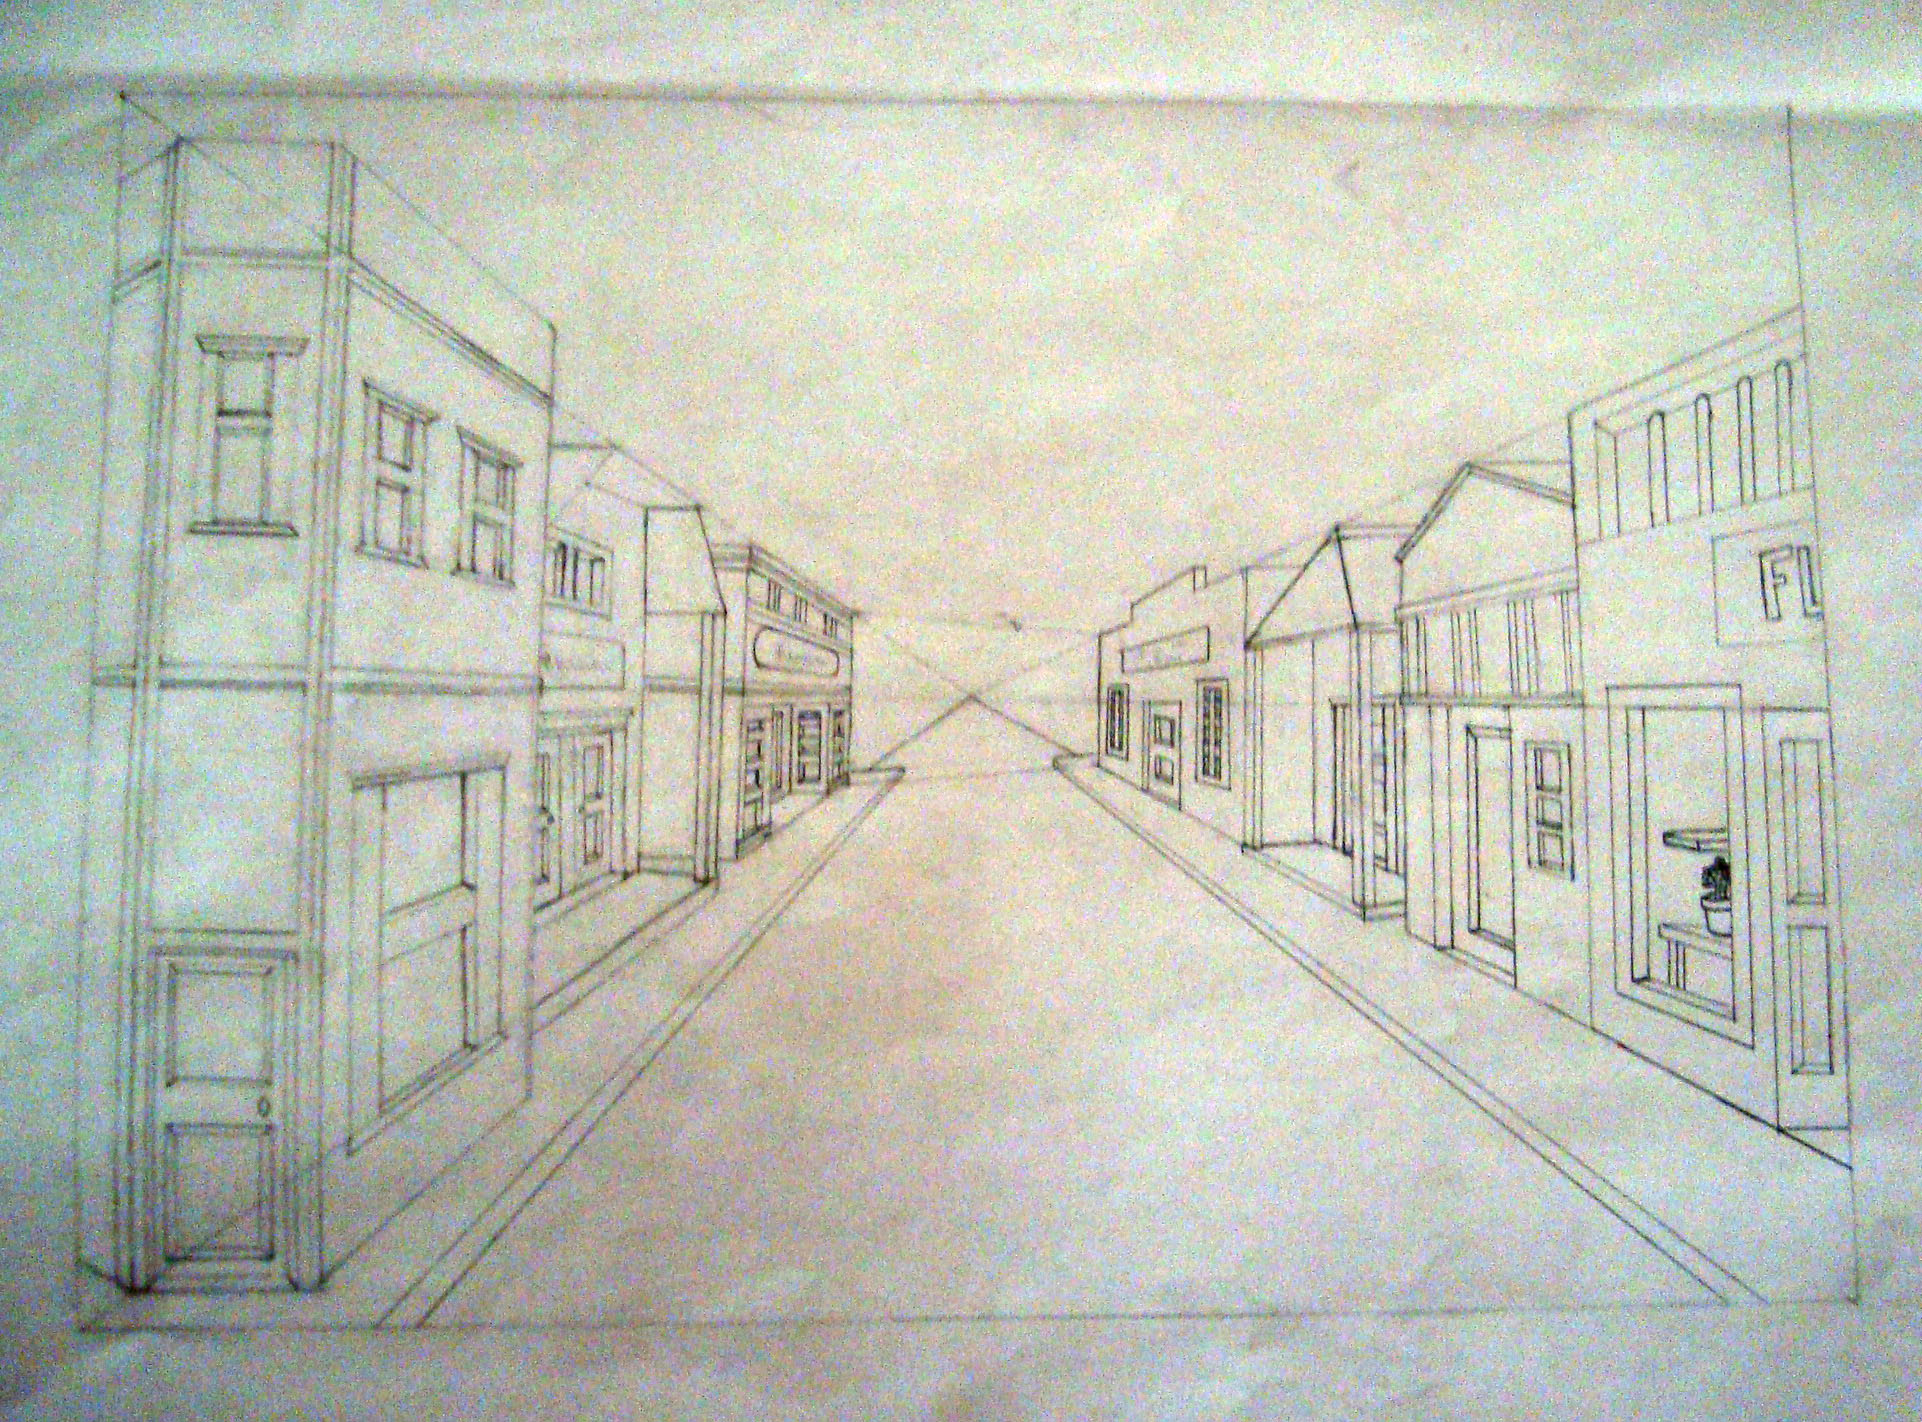 City Scene One Point Perspective